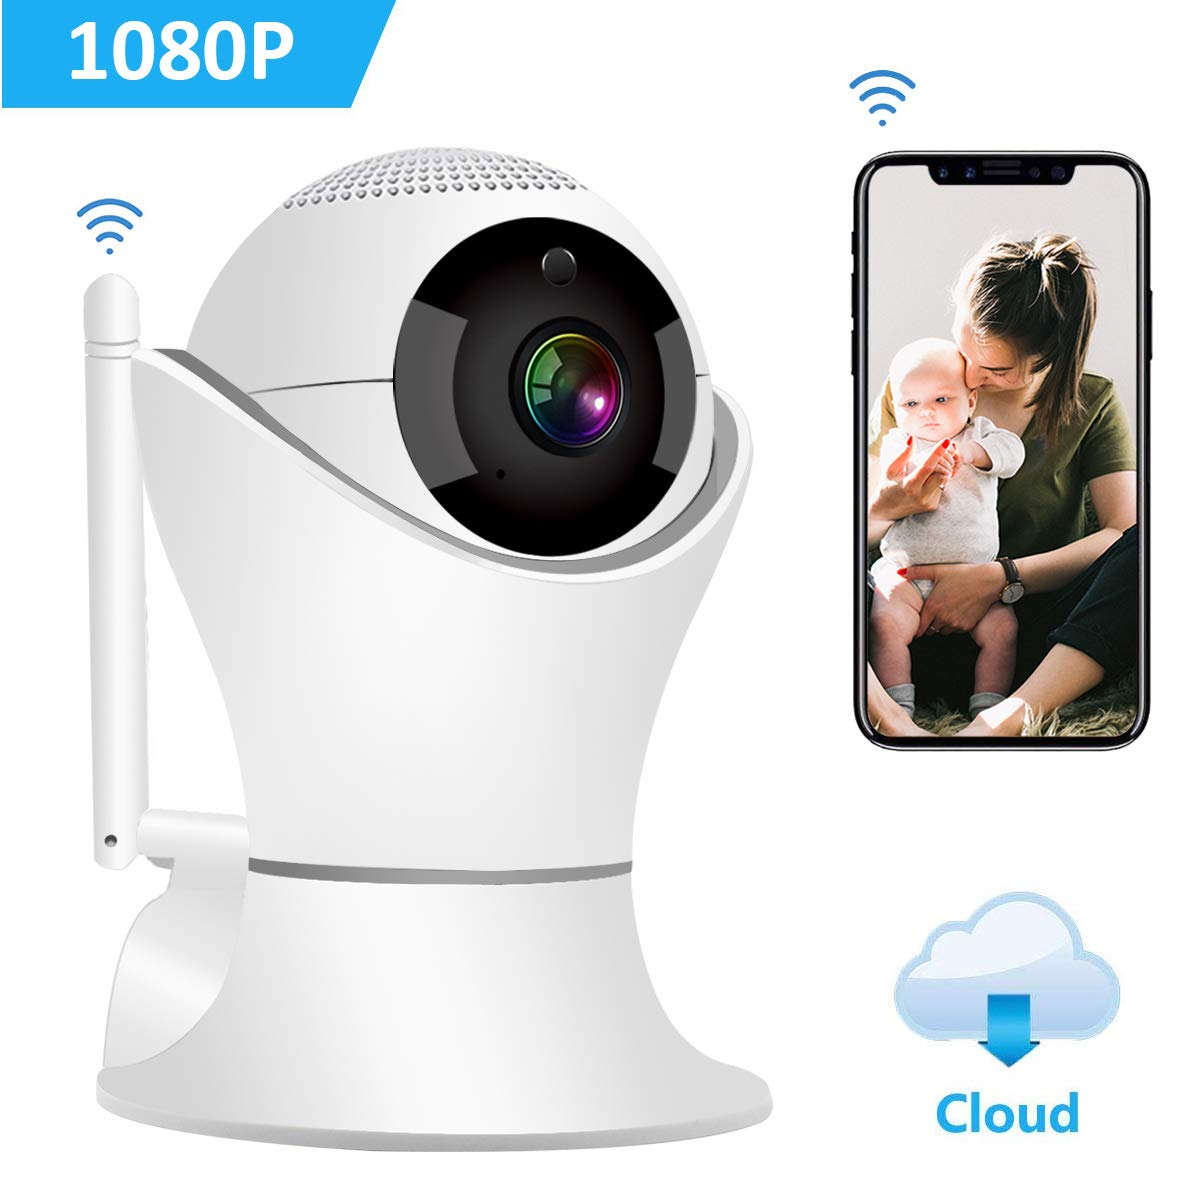 HD 1080p Wireless Indoor Security Camera, 2.4G WIFI Dome IP Camera with Pan/ Tilt /Zoom, 3D Panorama View, Two-Way Audio & 32 ft Night Vision, Motion Detection for Home Surveillance, Pet Baby Monitor